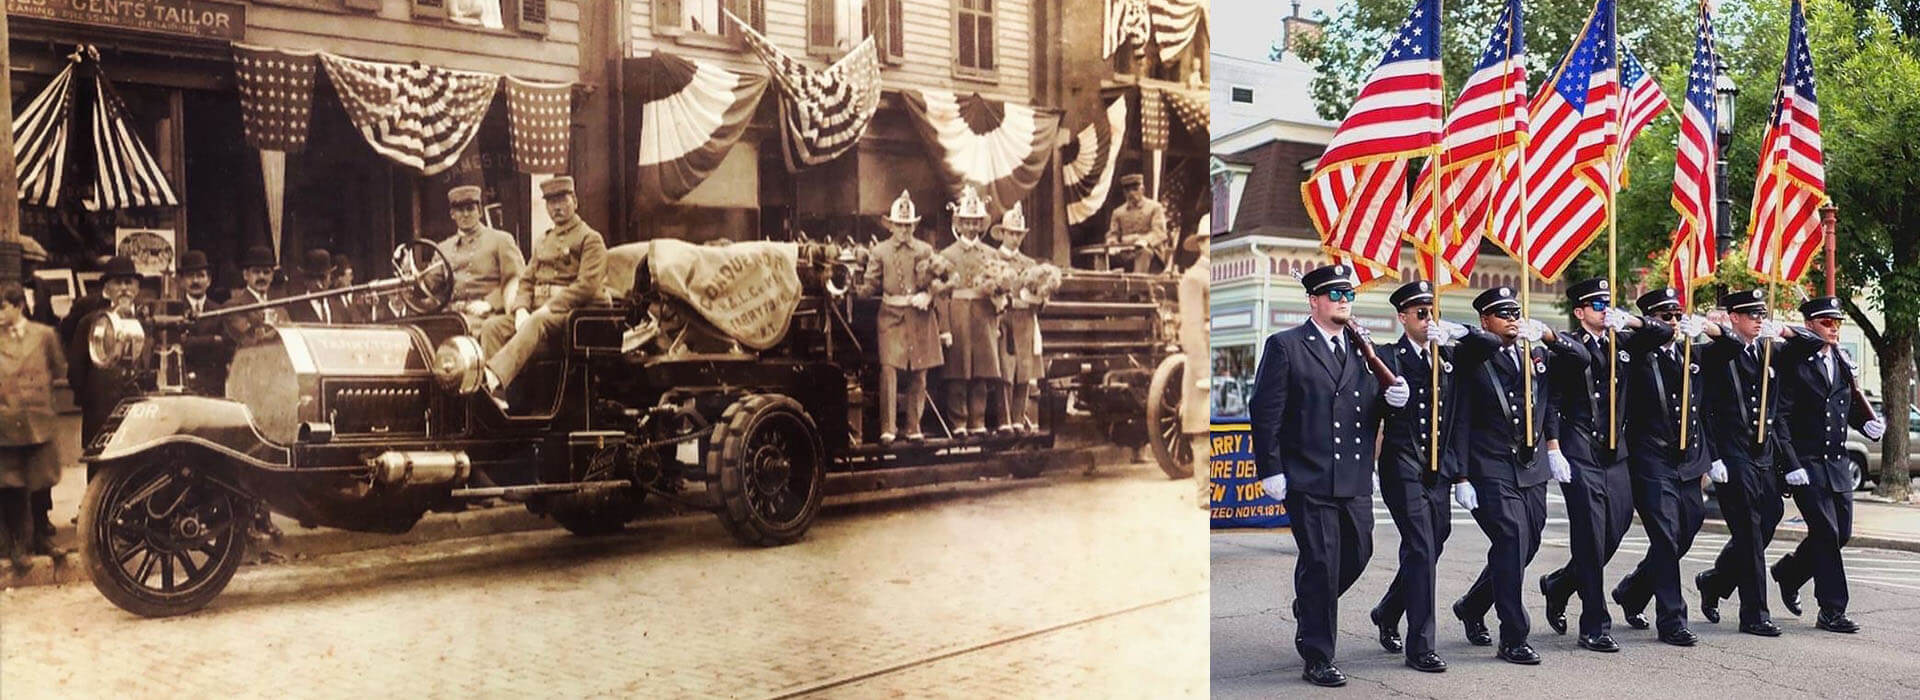 Tarrytown parade - past and present